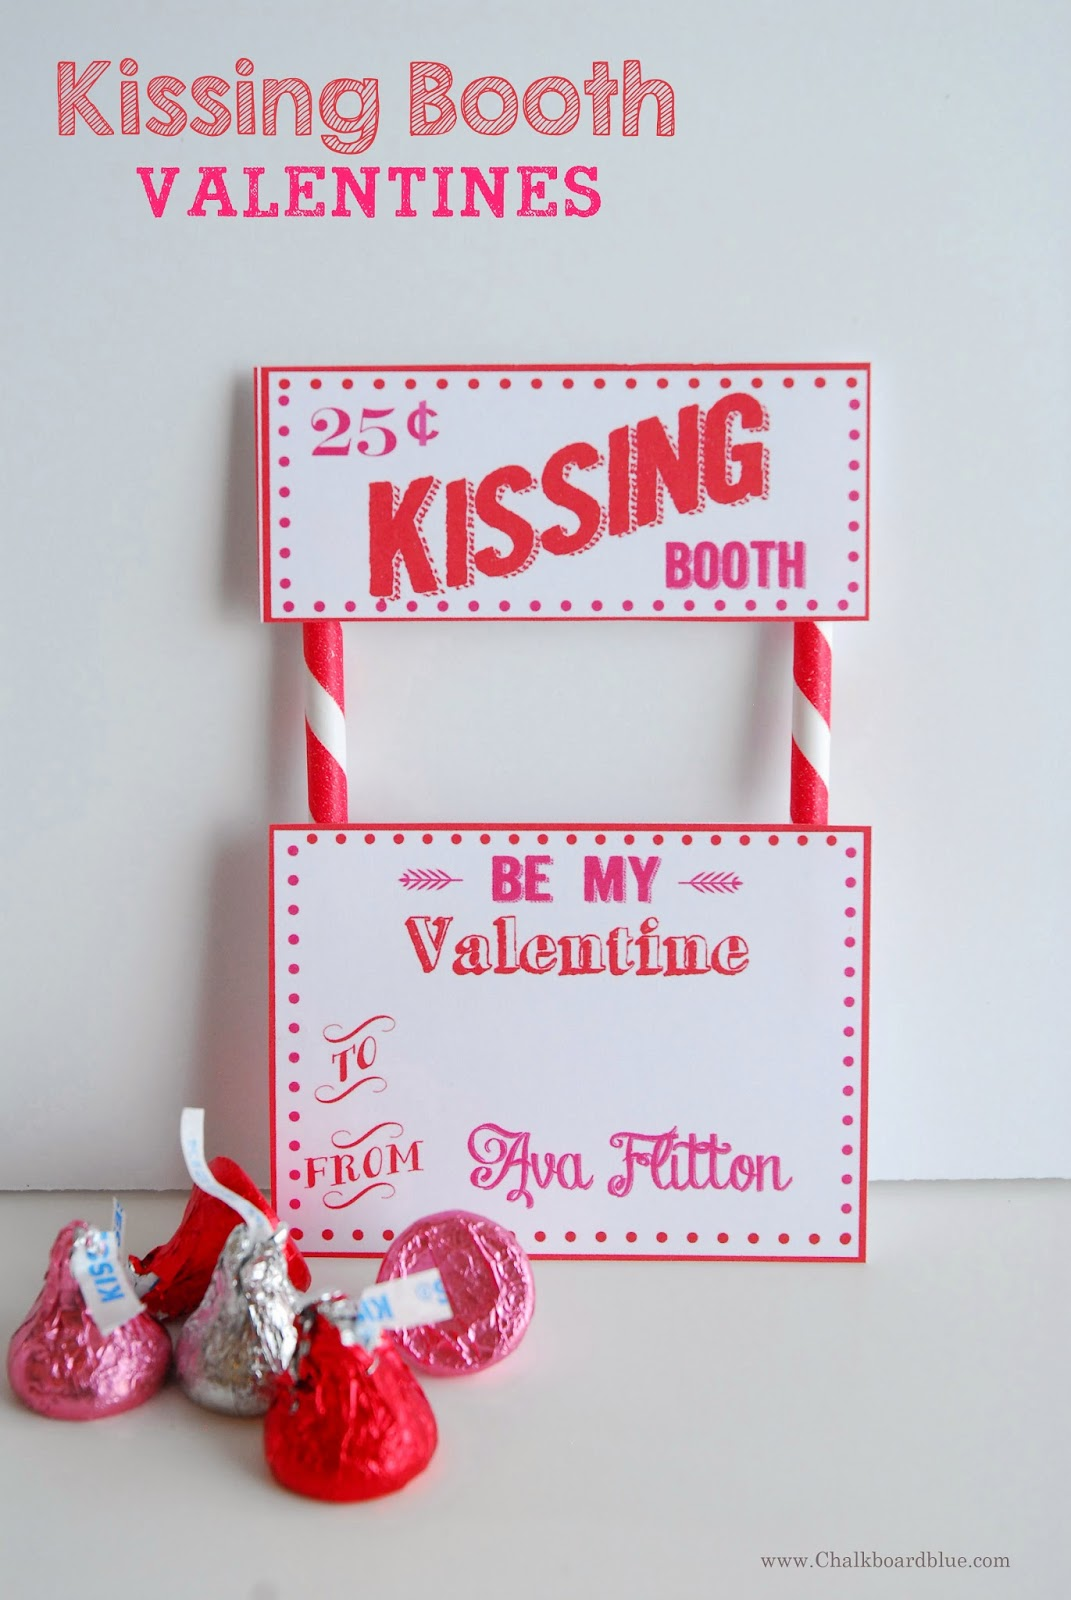 Chalkboard Blue Kissing Booth Valentines A Free Printable